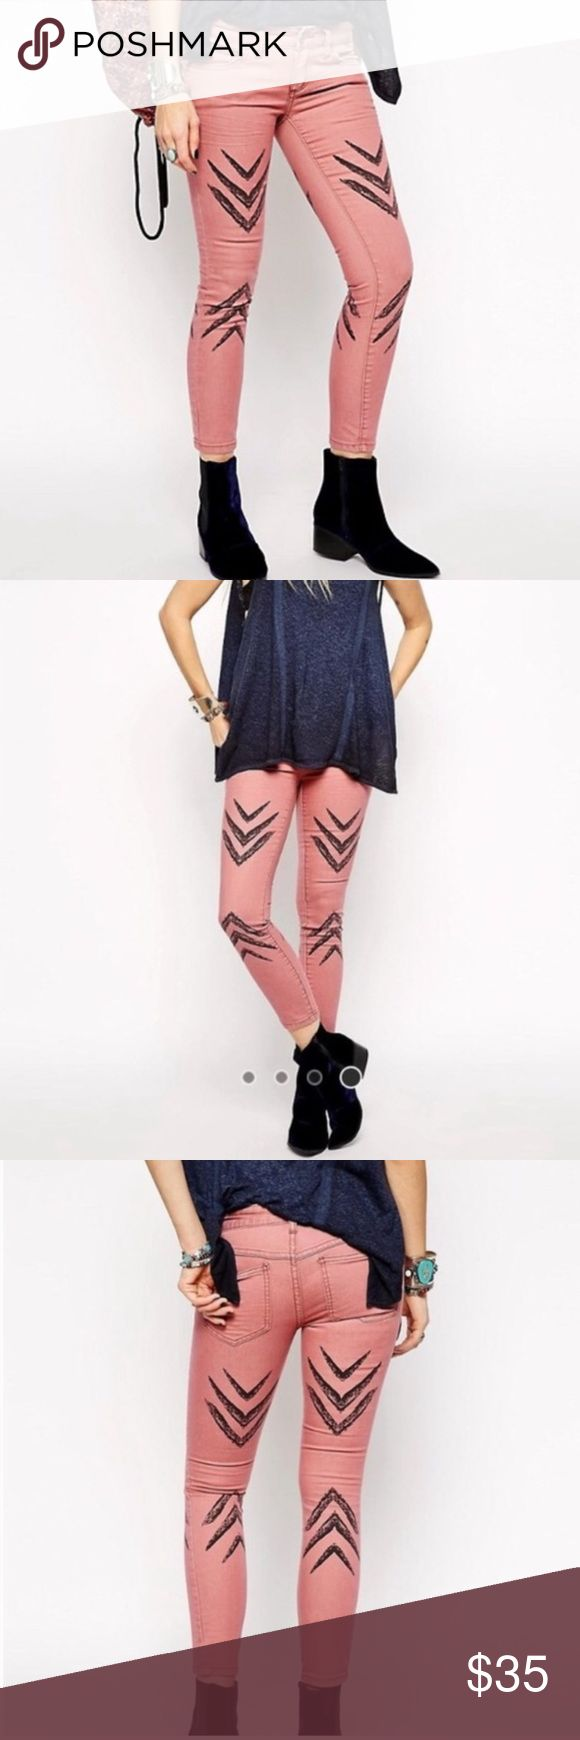 Free People Dotted Ikat Arrow Chevron Skinny Free People Dotted Ikat Arrow Chevron Skinny Jeans / Pants. Ankle length skinny jeans with dotted ikat print on the front and back. 5-pocket style with zipper and button fly closure. Just a touch of stretch for a comfortable and flattering fit. Super cute, boho look. Run true to size. The color is a bold terra cotta / brick, most true to my photos. Sold out on FP website, retail $78. 78% Cotton, 20% Polyester, 2% Spandex ✨ never worn Free People…